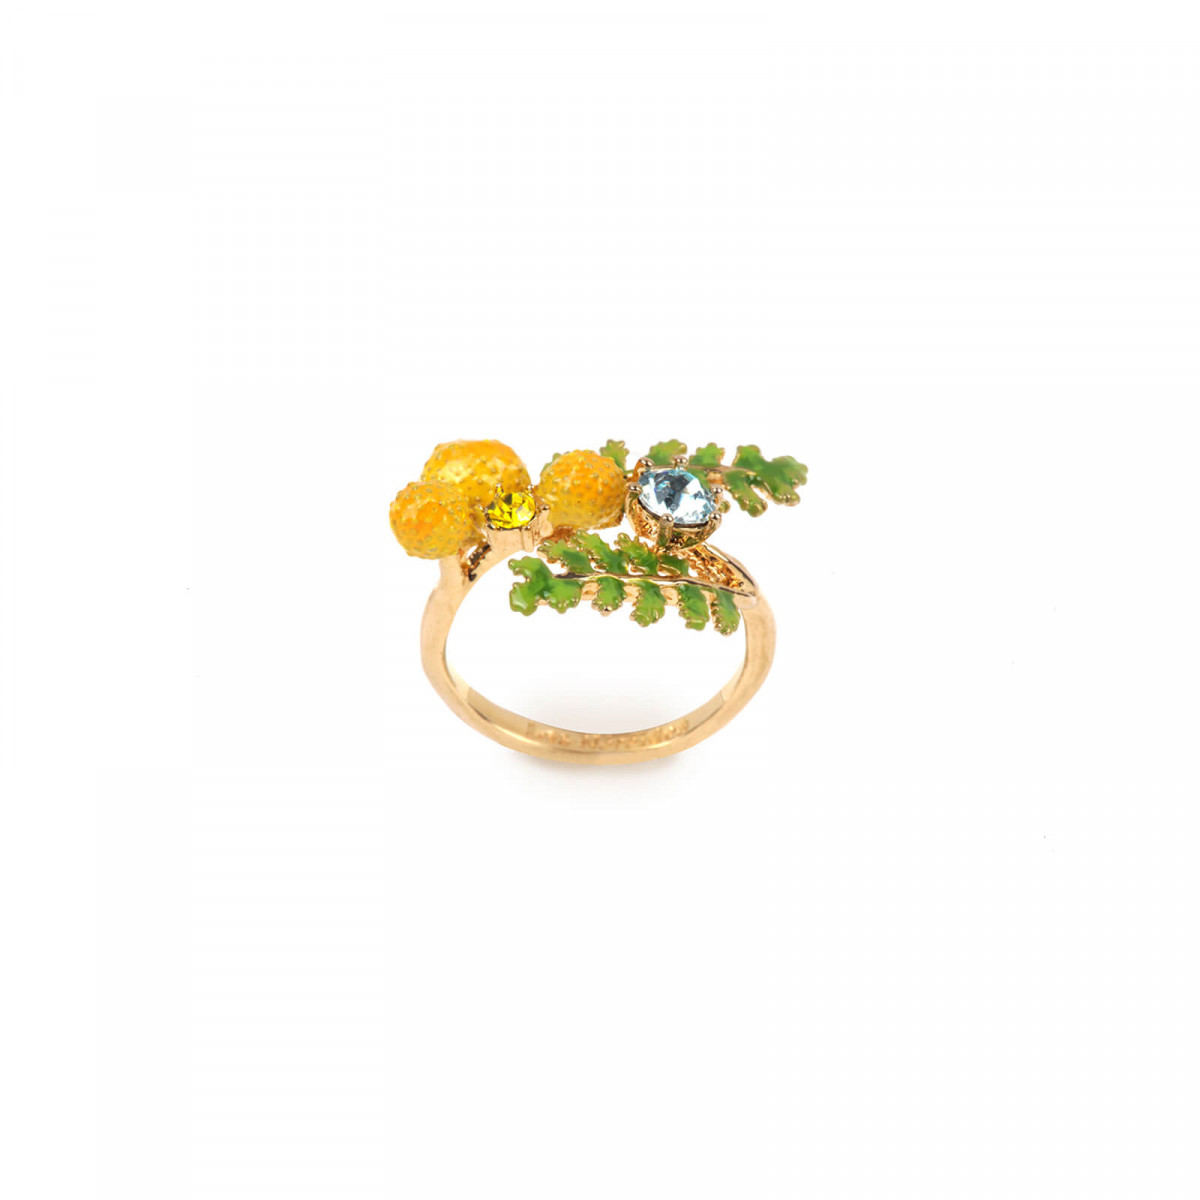 Rabbit's family and faceted glass adjustable ring